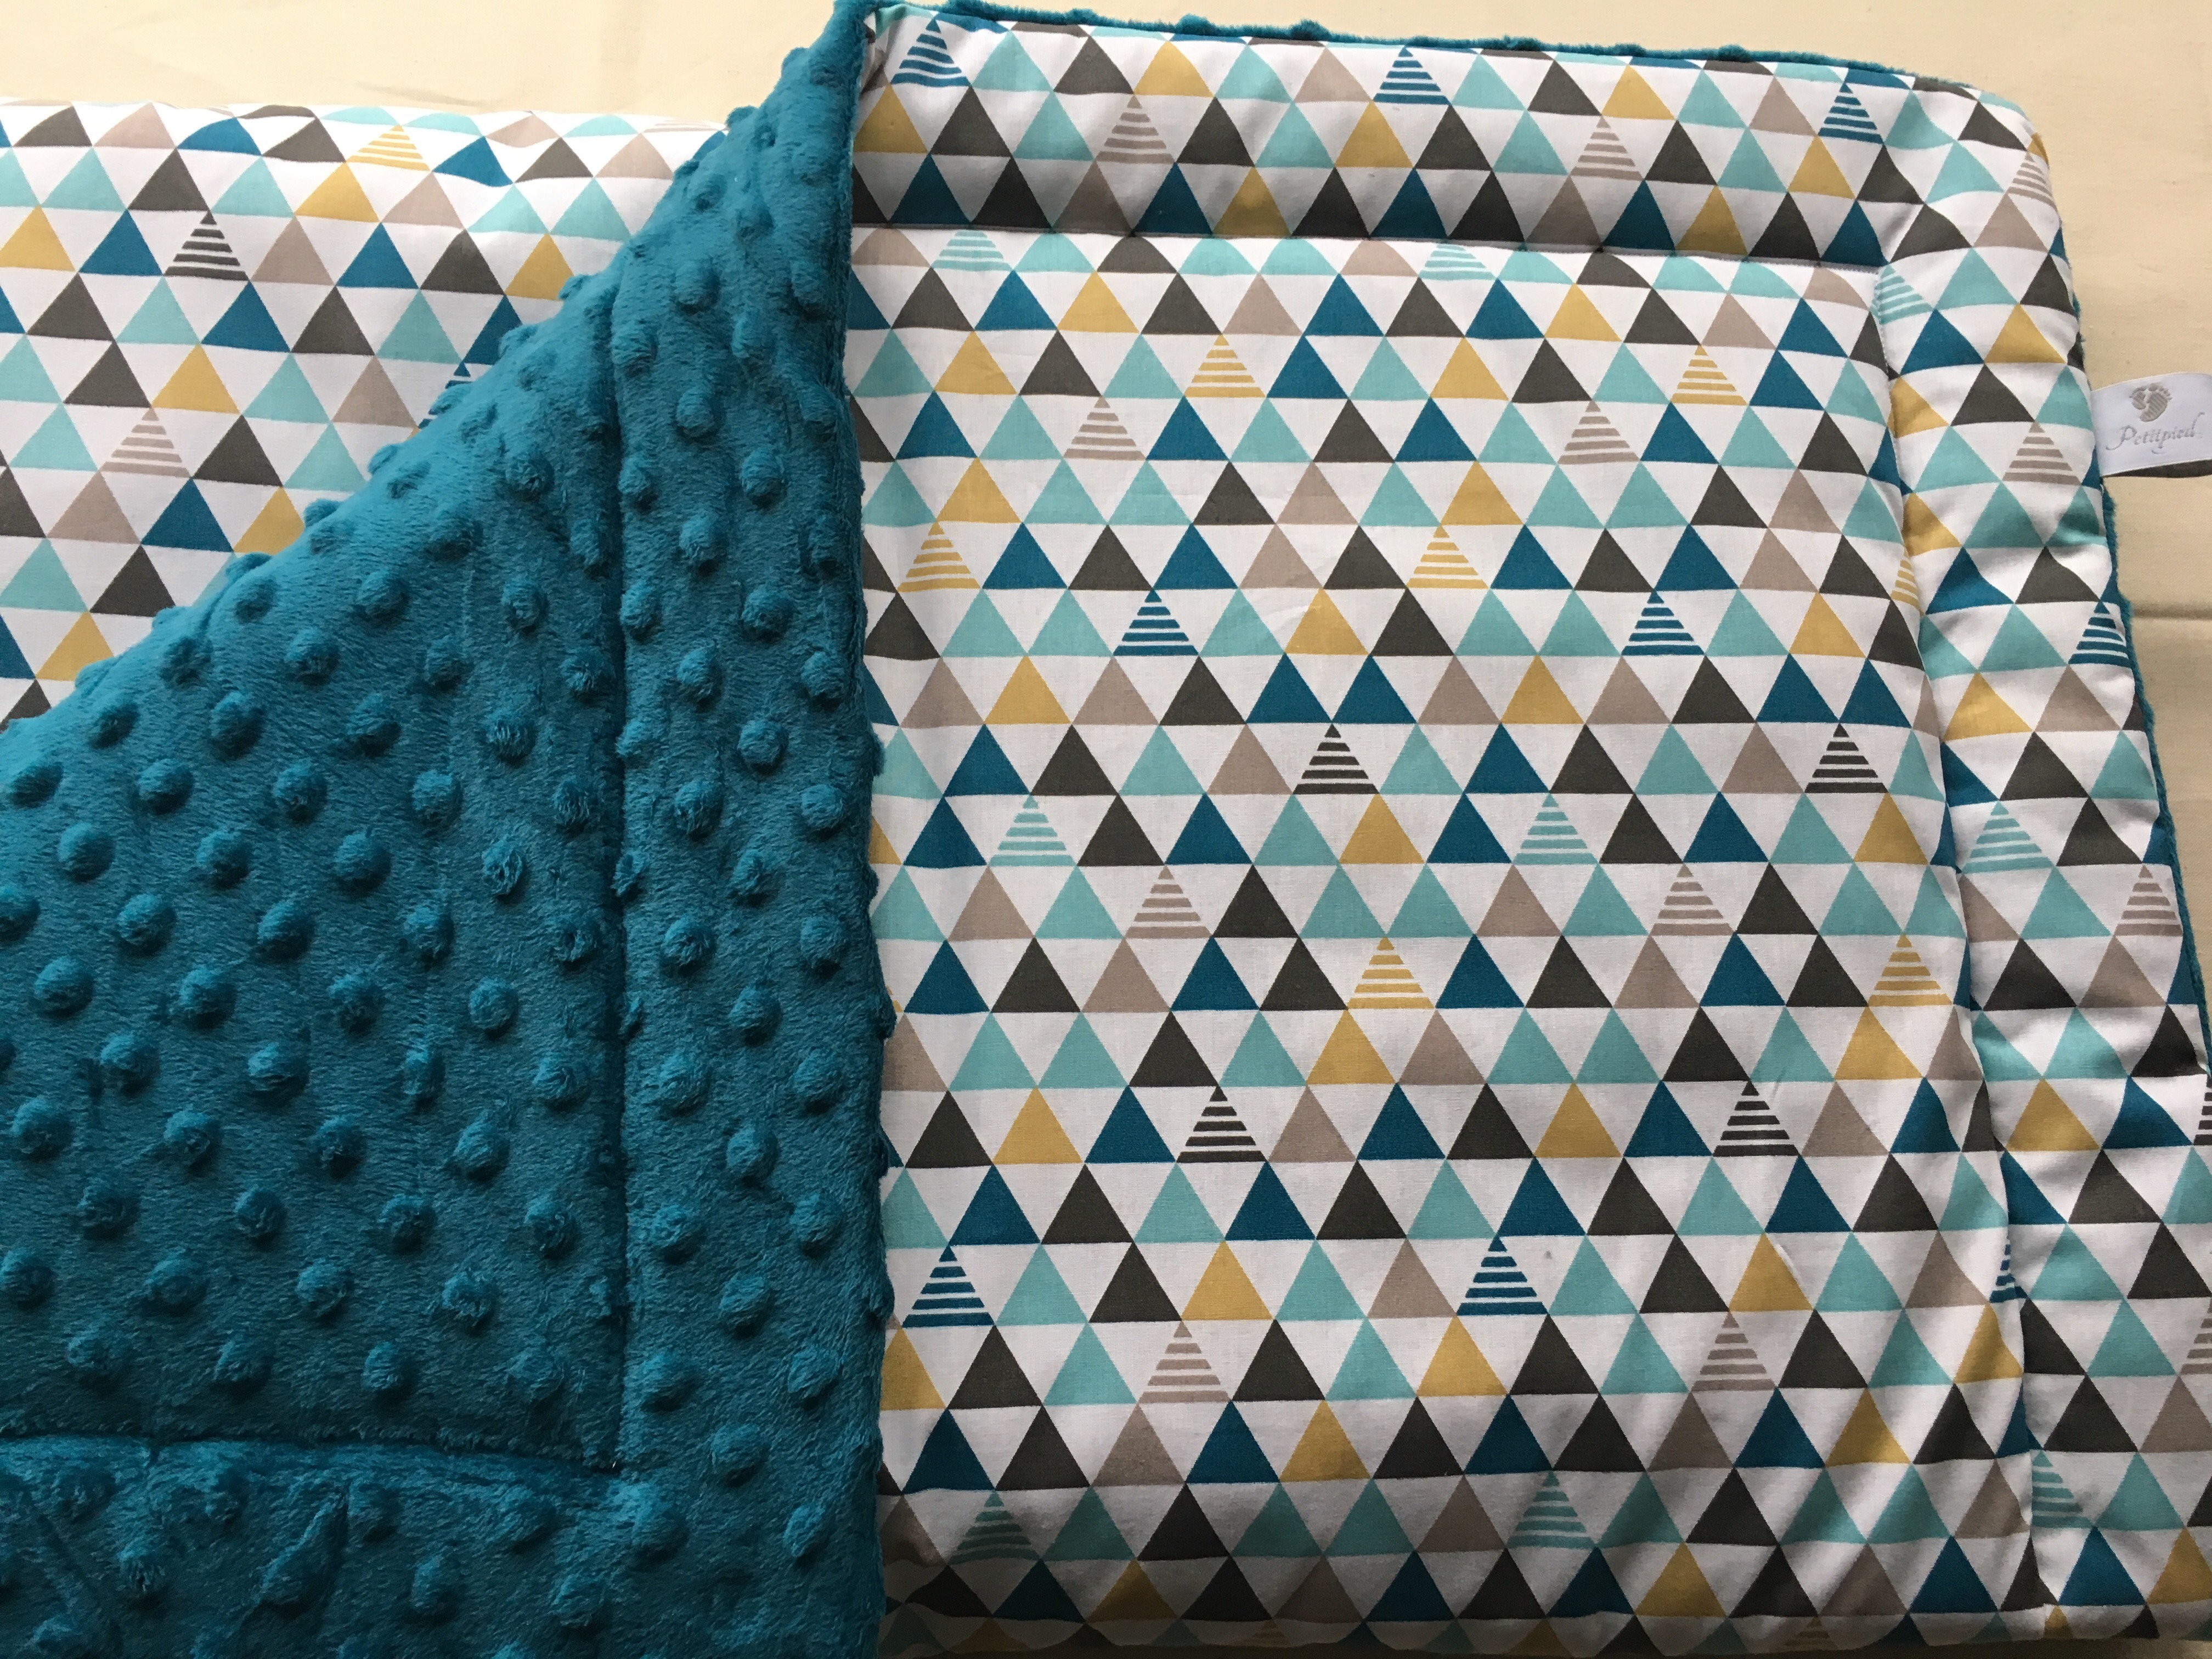 couverture plaid motif graphic moutarde et bleu canard accessoires bebe par petitpied. Black Bedroom Furniture Sets. Home Design Ideas